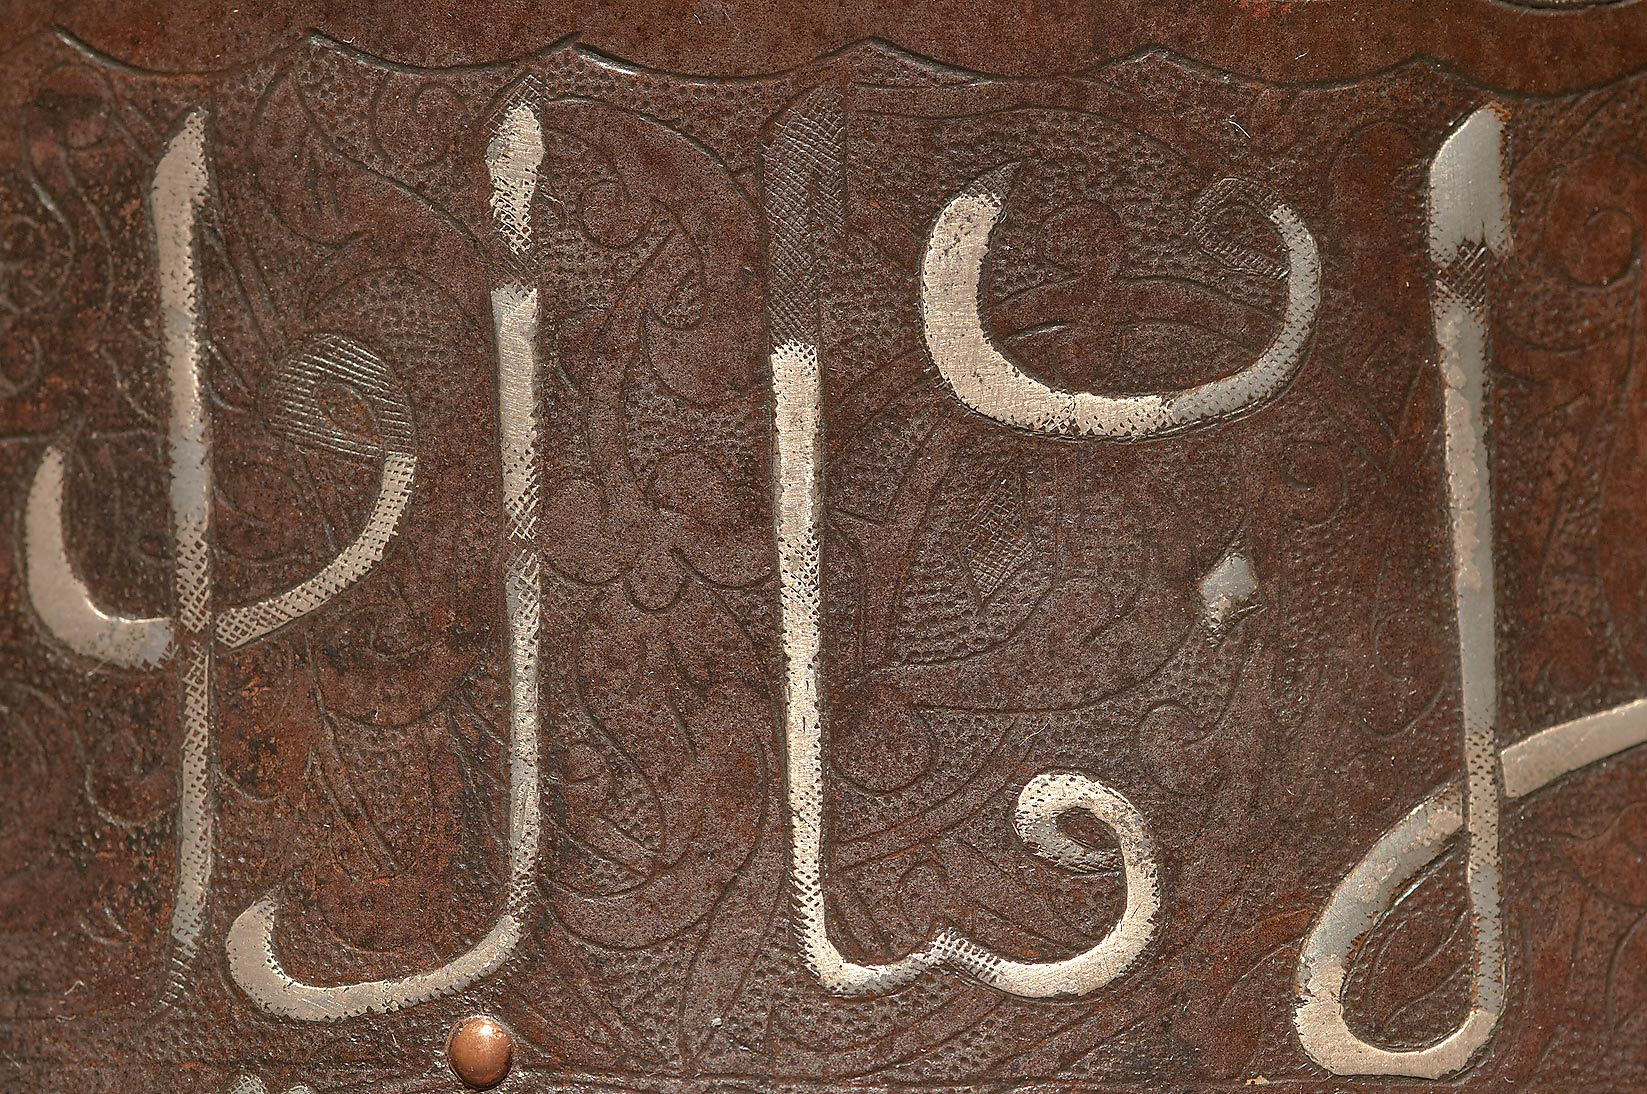 Arabic calligraphy on display in Museum of Islamic Art. Doha, Qatar